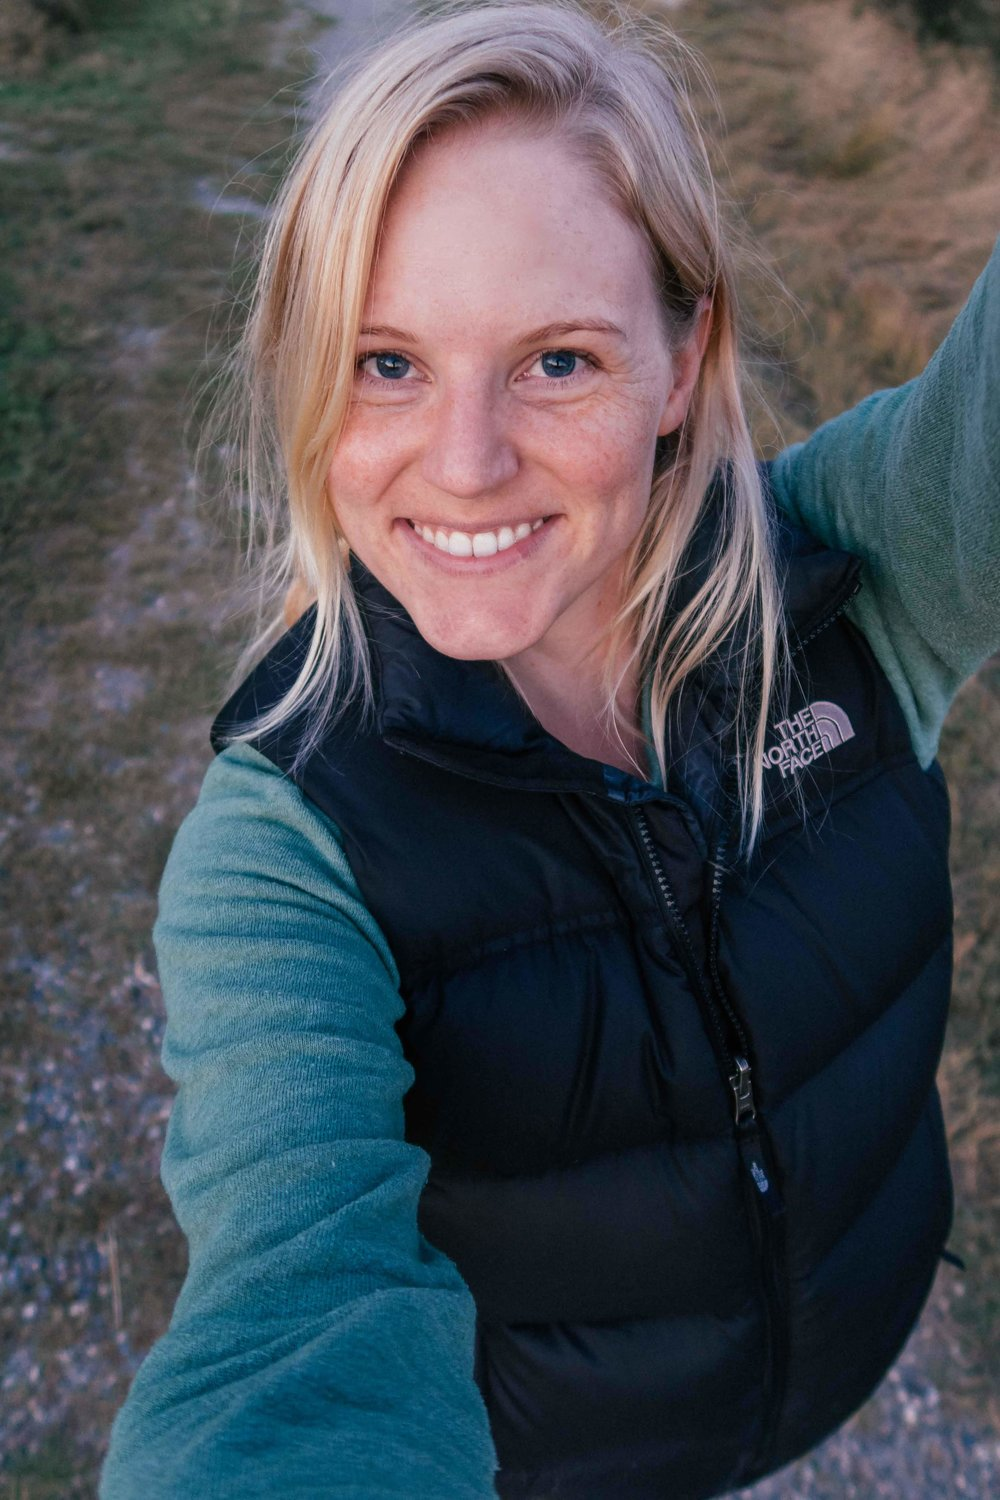 Blogger Bri Sul hiking around Montana. Super cute North Face jacket.